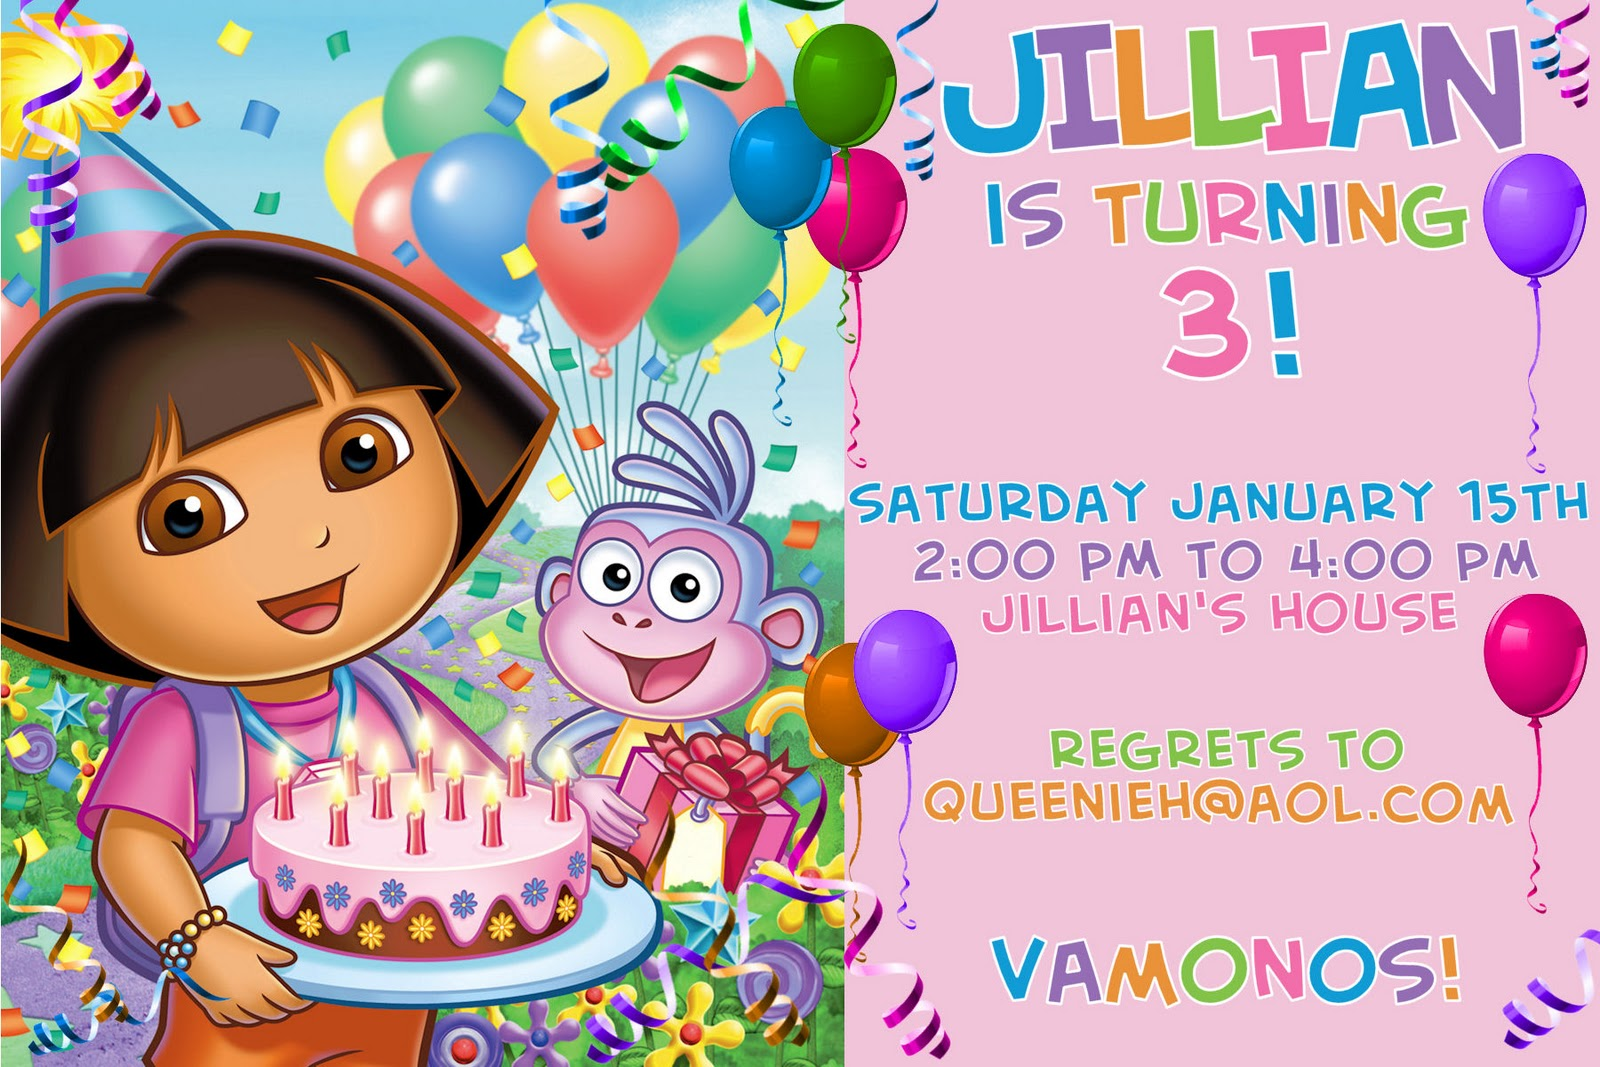 Kids birthday party invitation card ideas for your child special day designs on card bookmarktalkfo Images